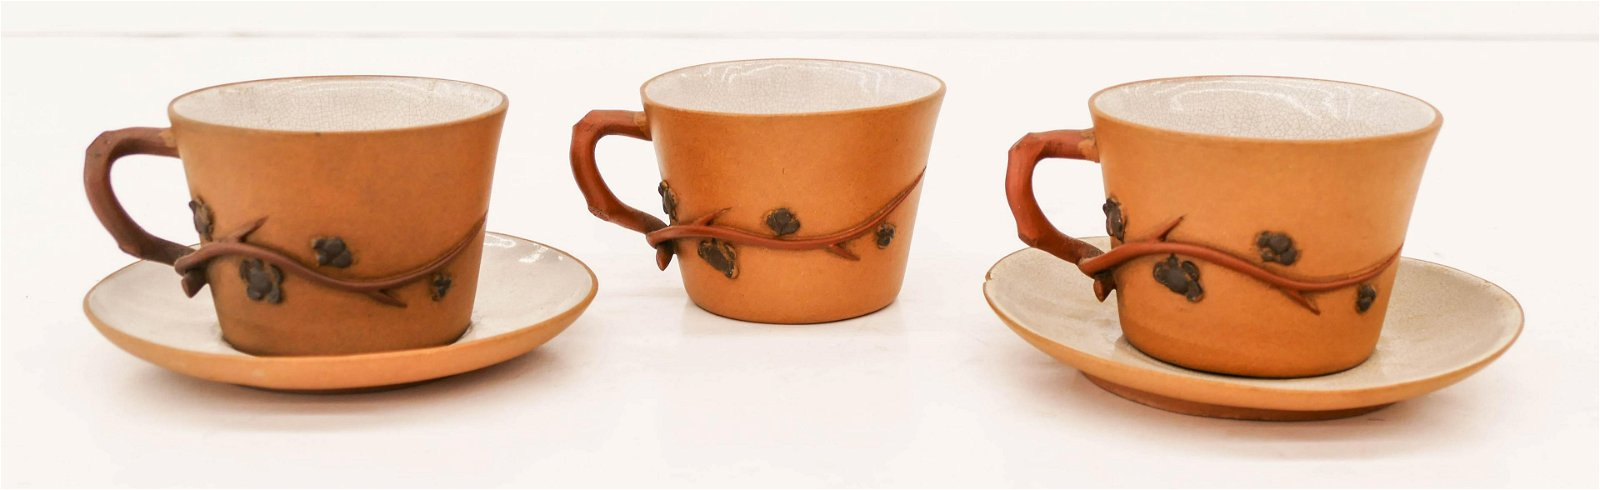 3pc Chinese Buff Colored Yixing Cup Saucers 2.5'x4.5''